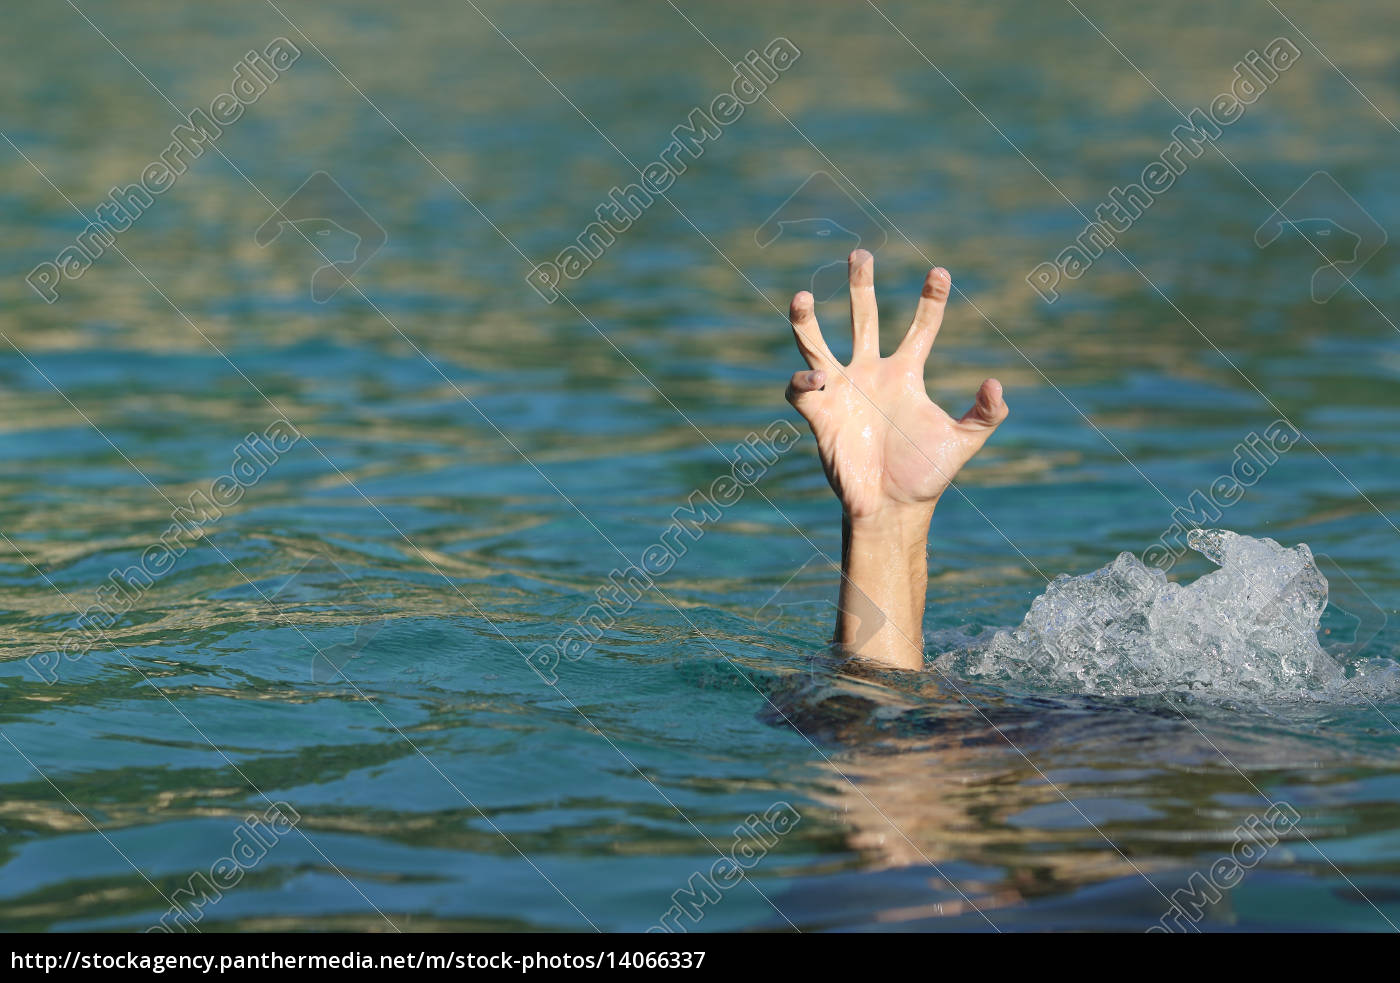 hand, of, a, man, drowning, in - 14066337